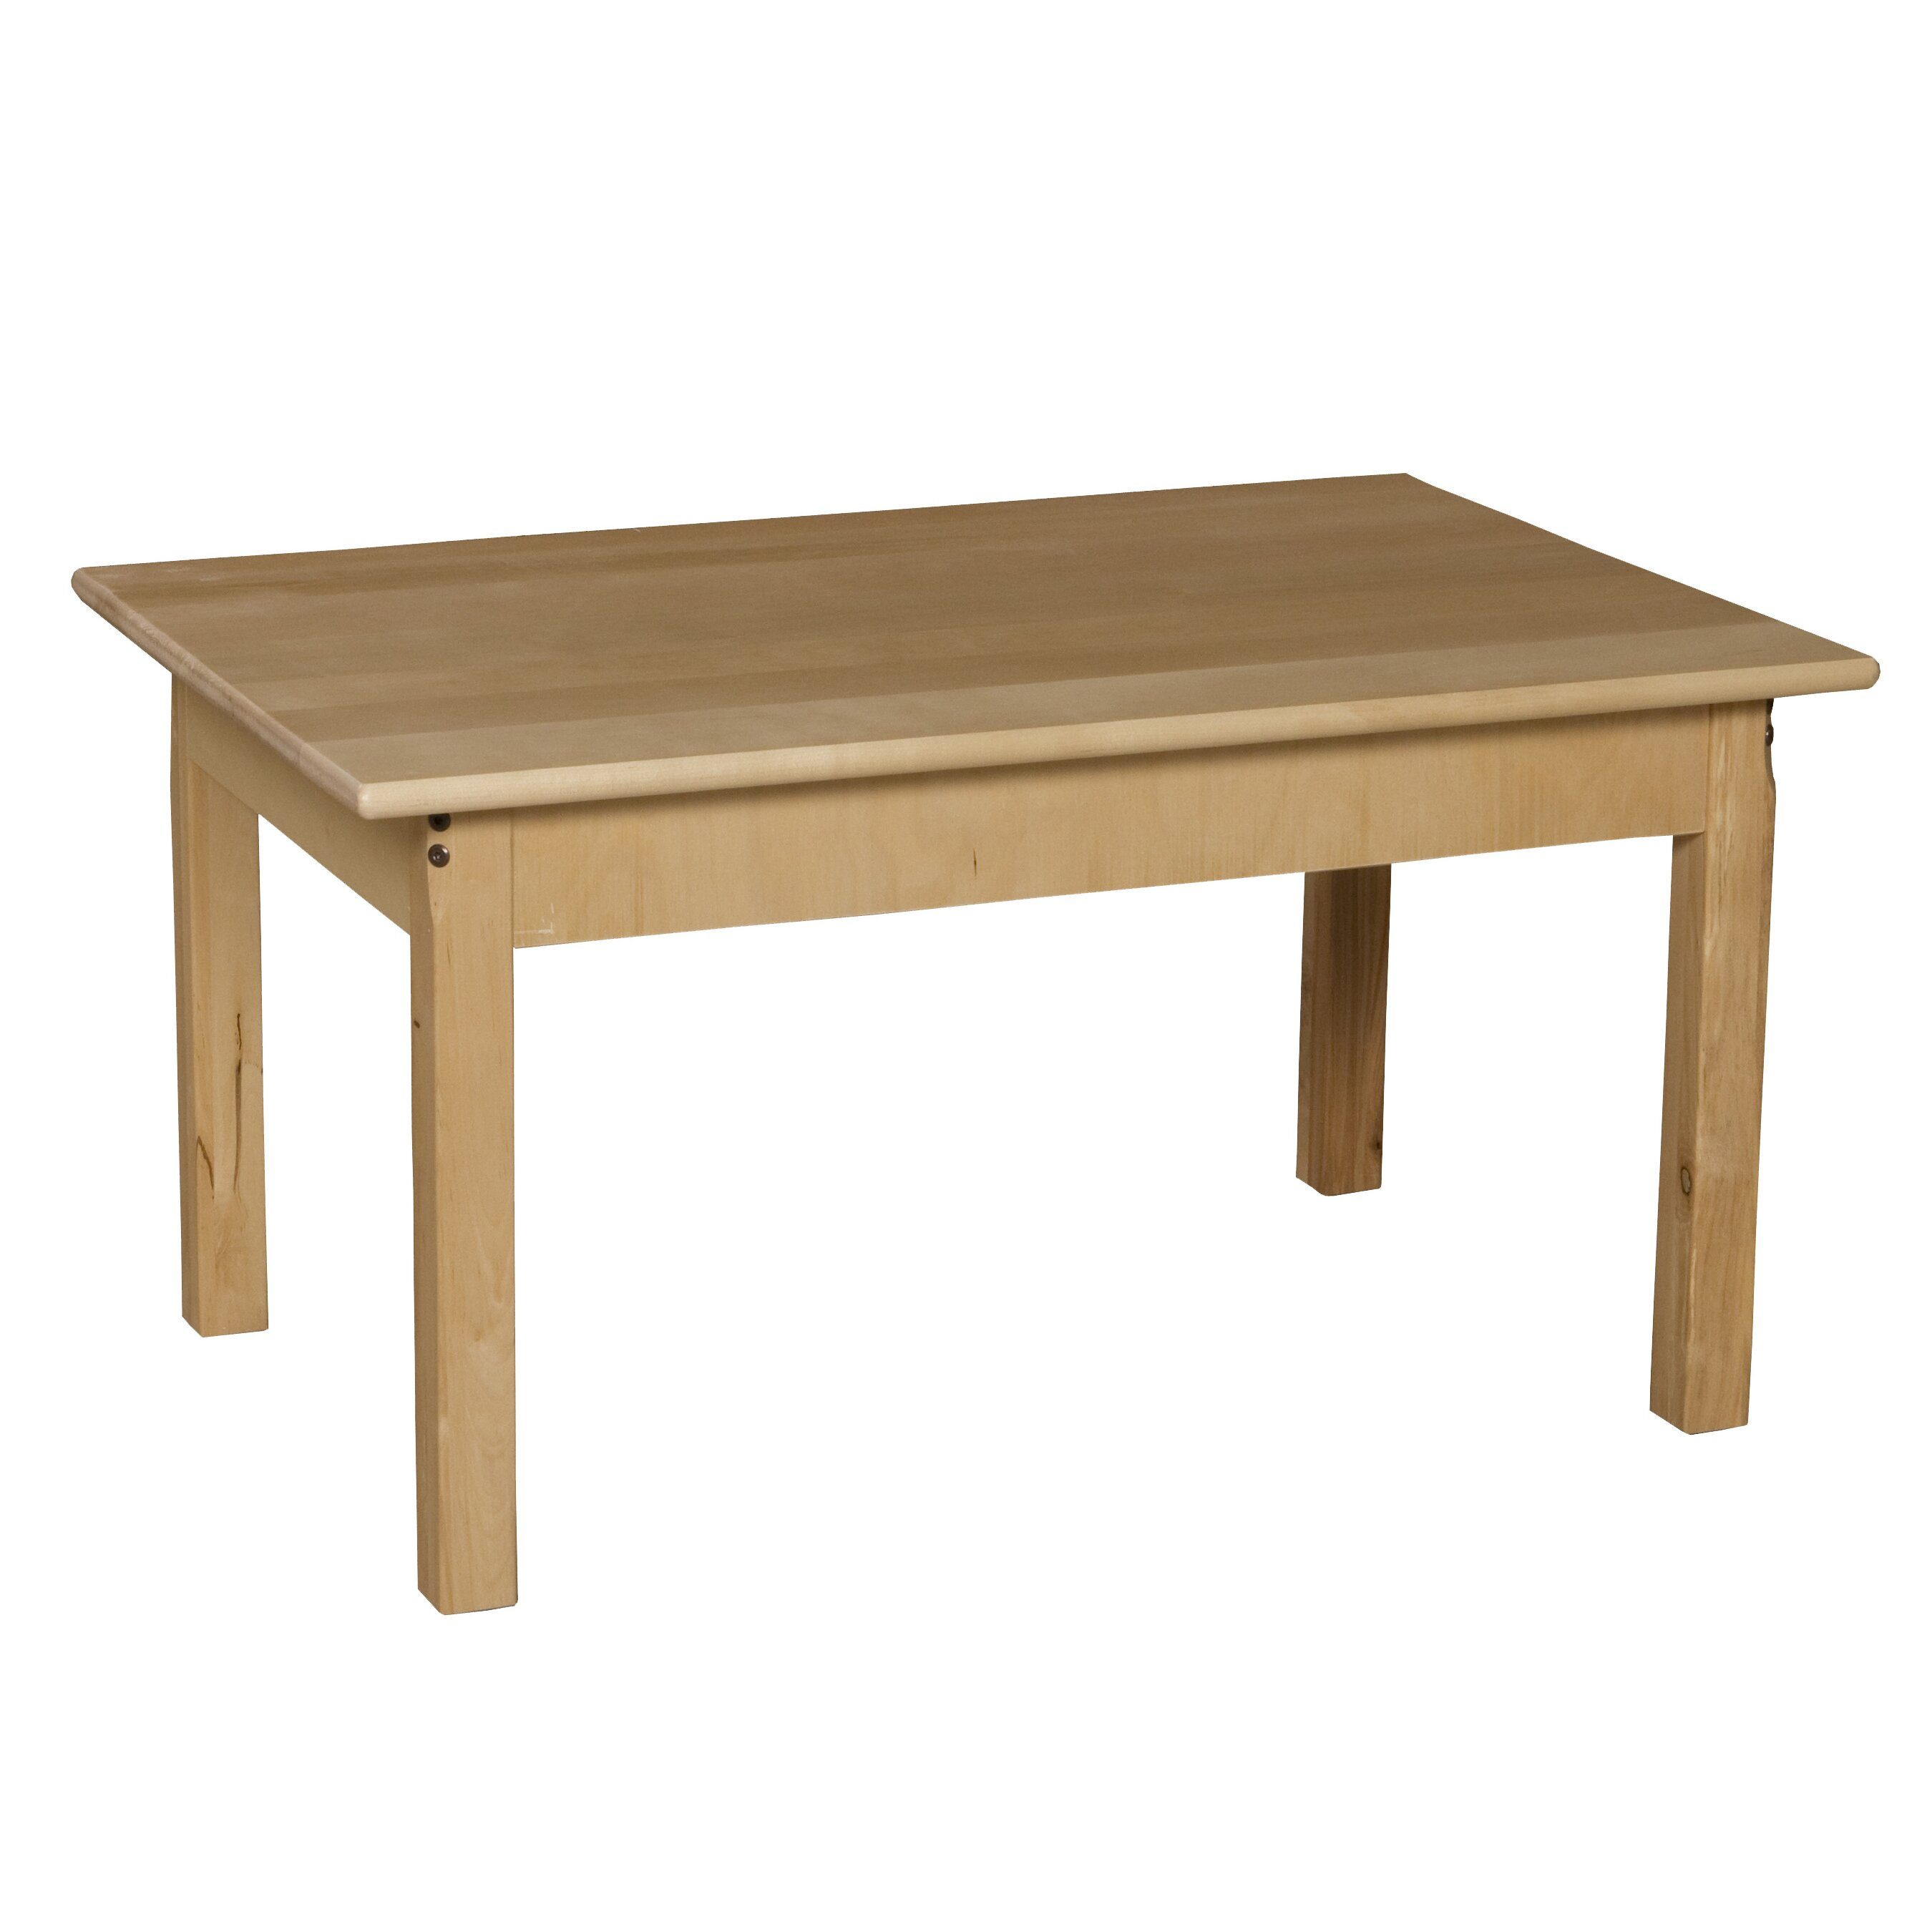 Wood designs 36 x 24 rectangular activity table for Coffee table 48 x 36